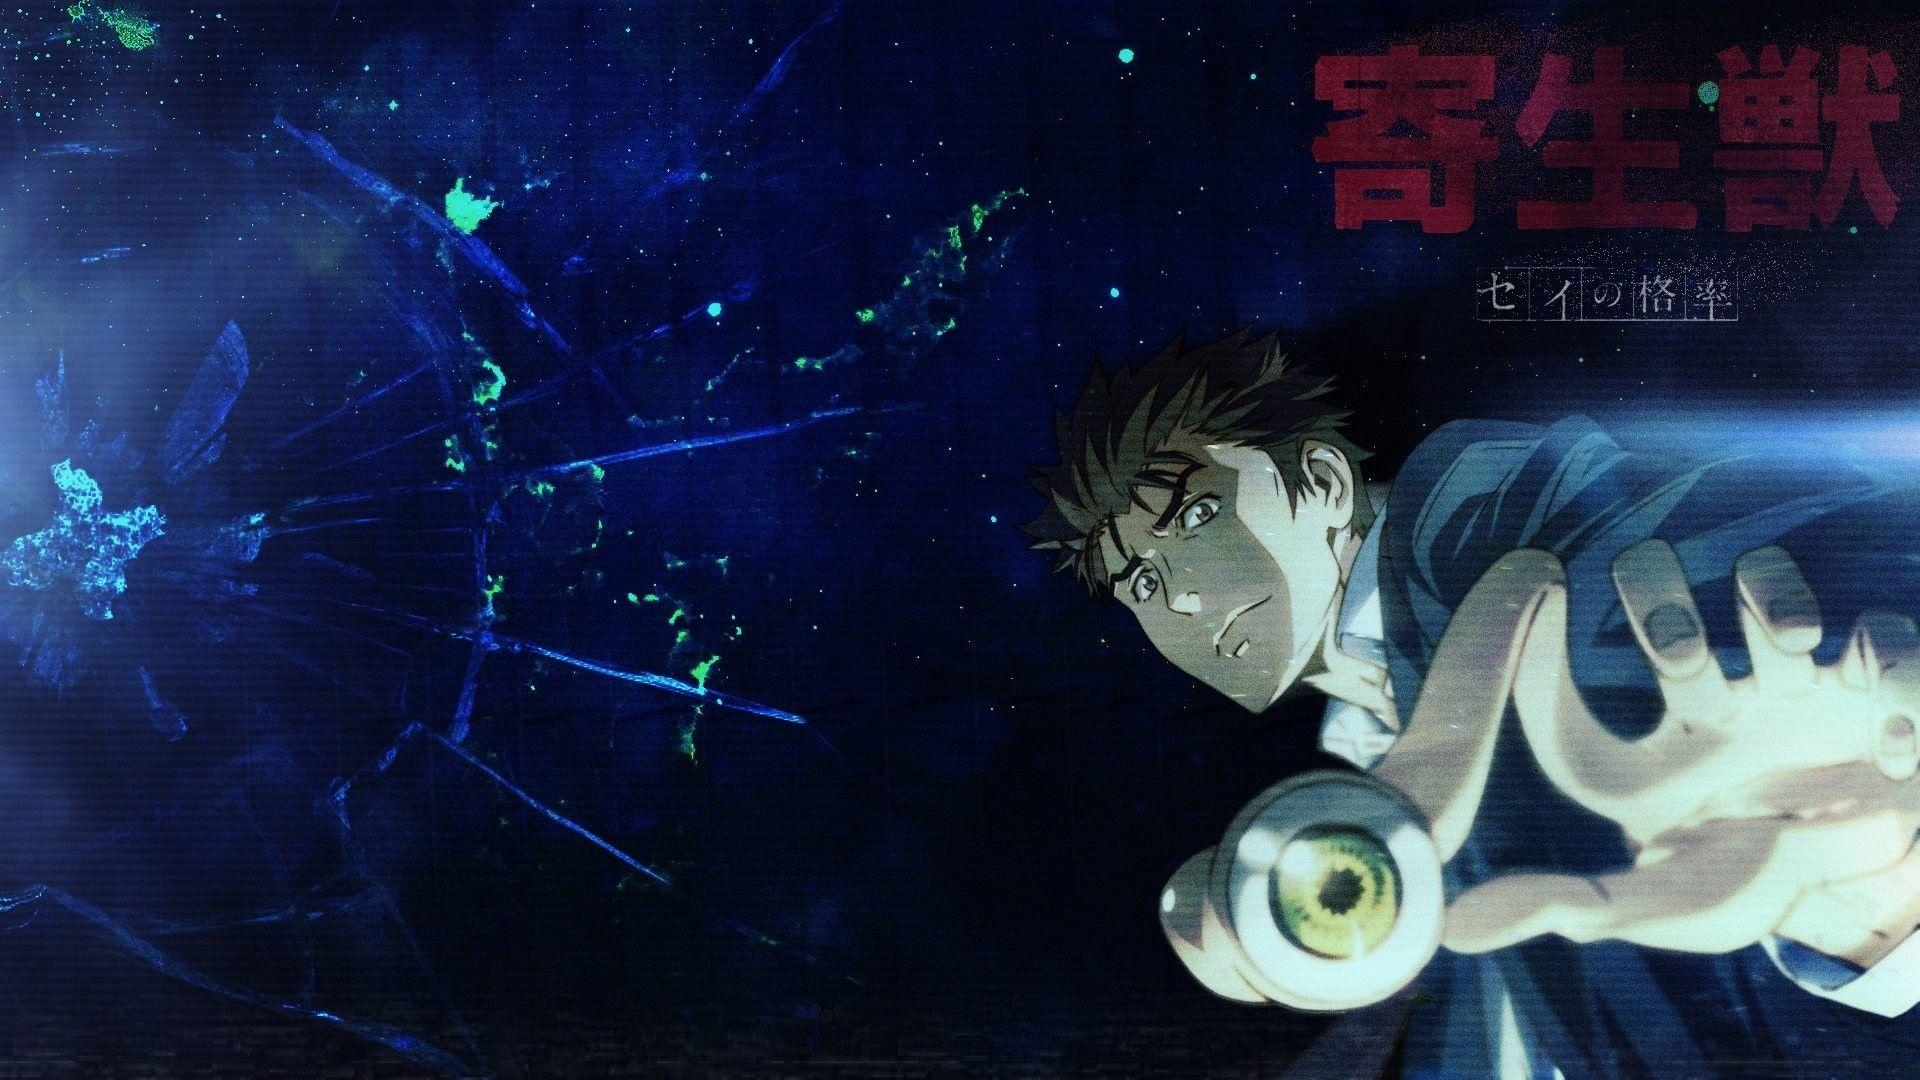 Parasyte Anime HD Wallpapers - Wallpaper Cave